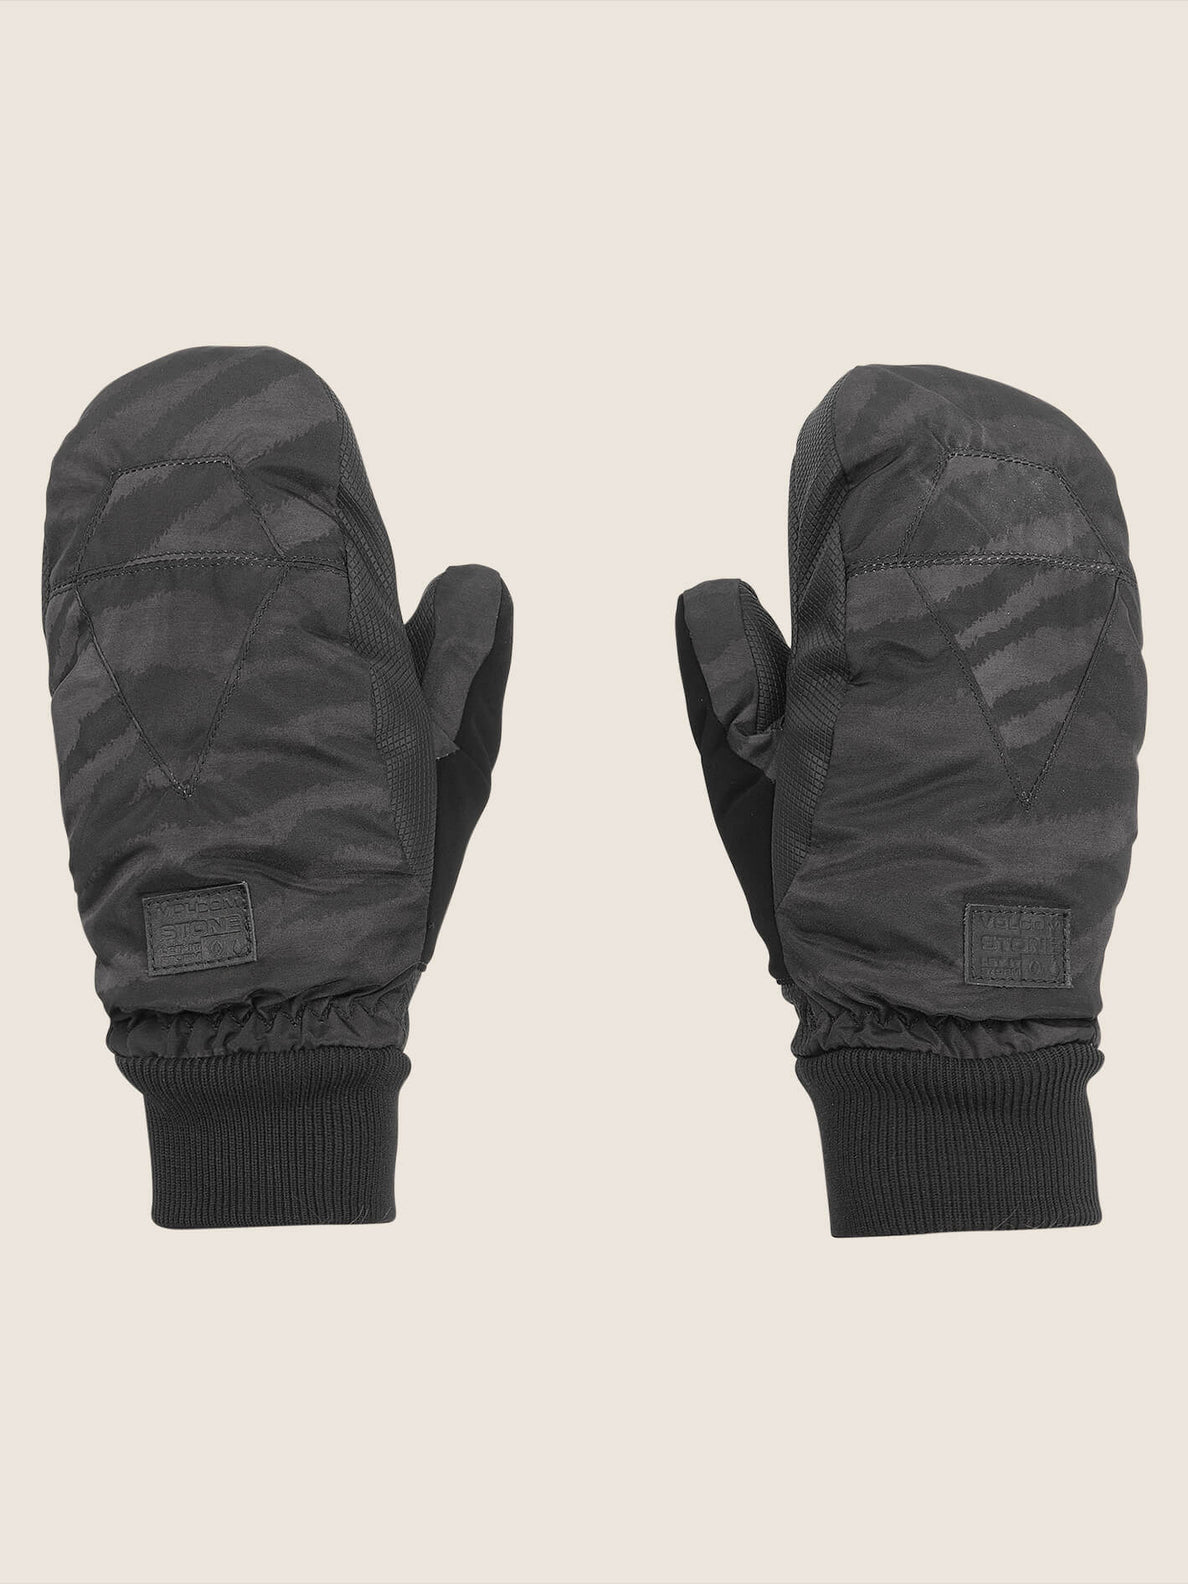 Bistro Mitt In Black On Black, Front View